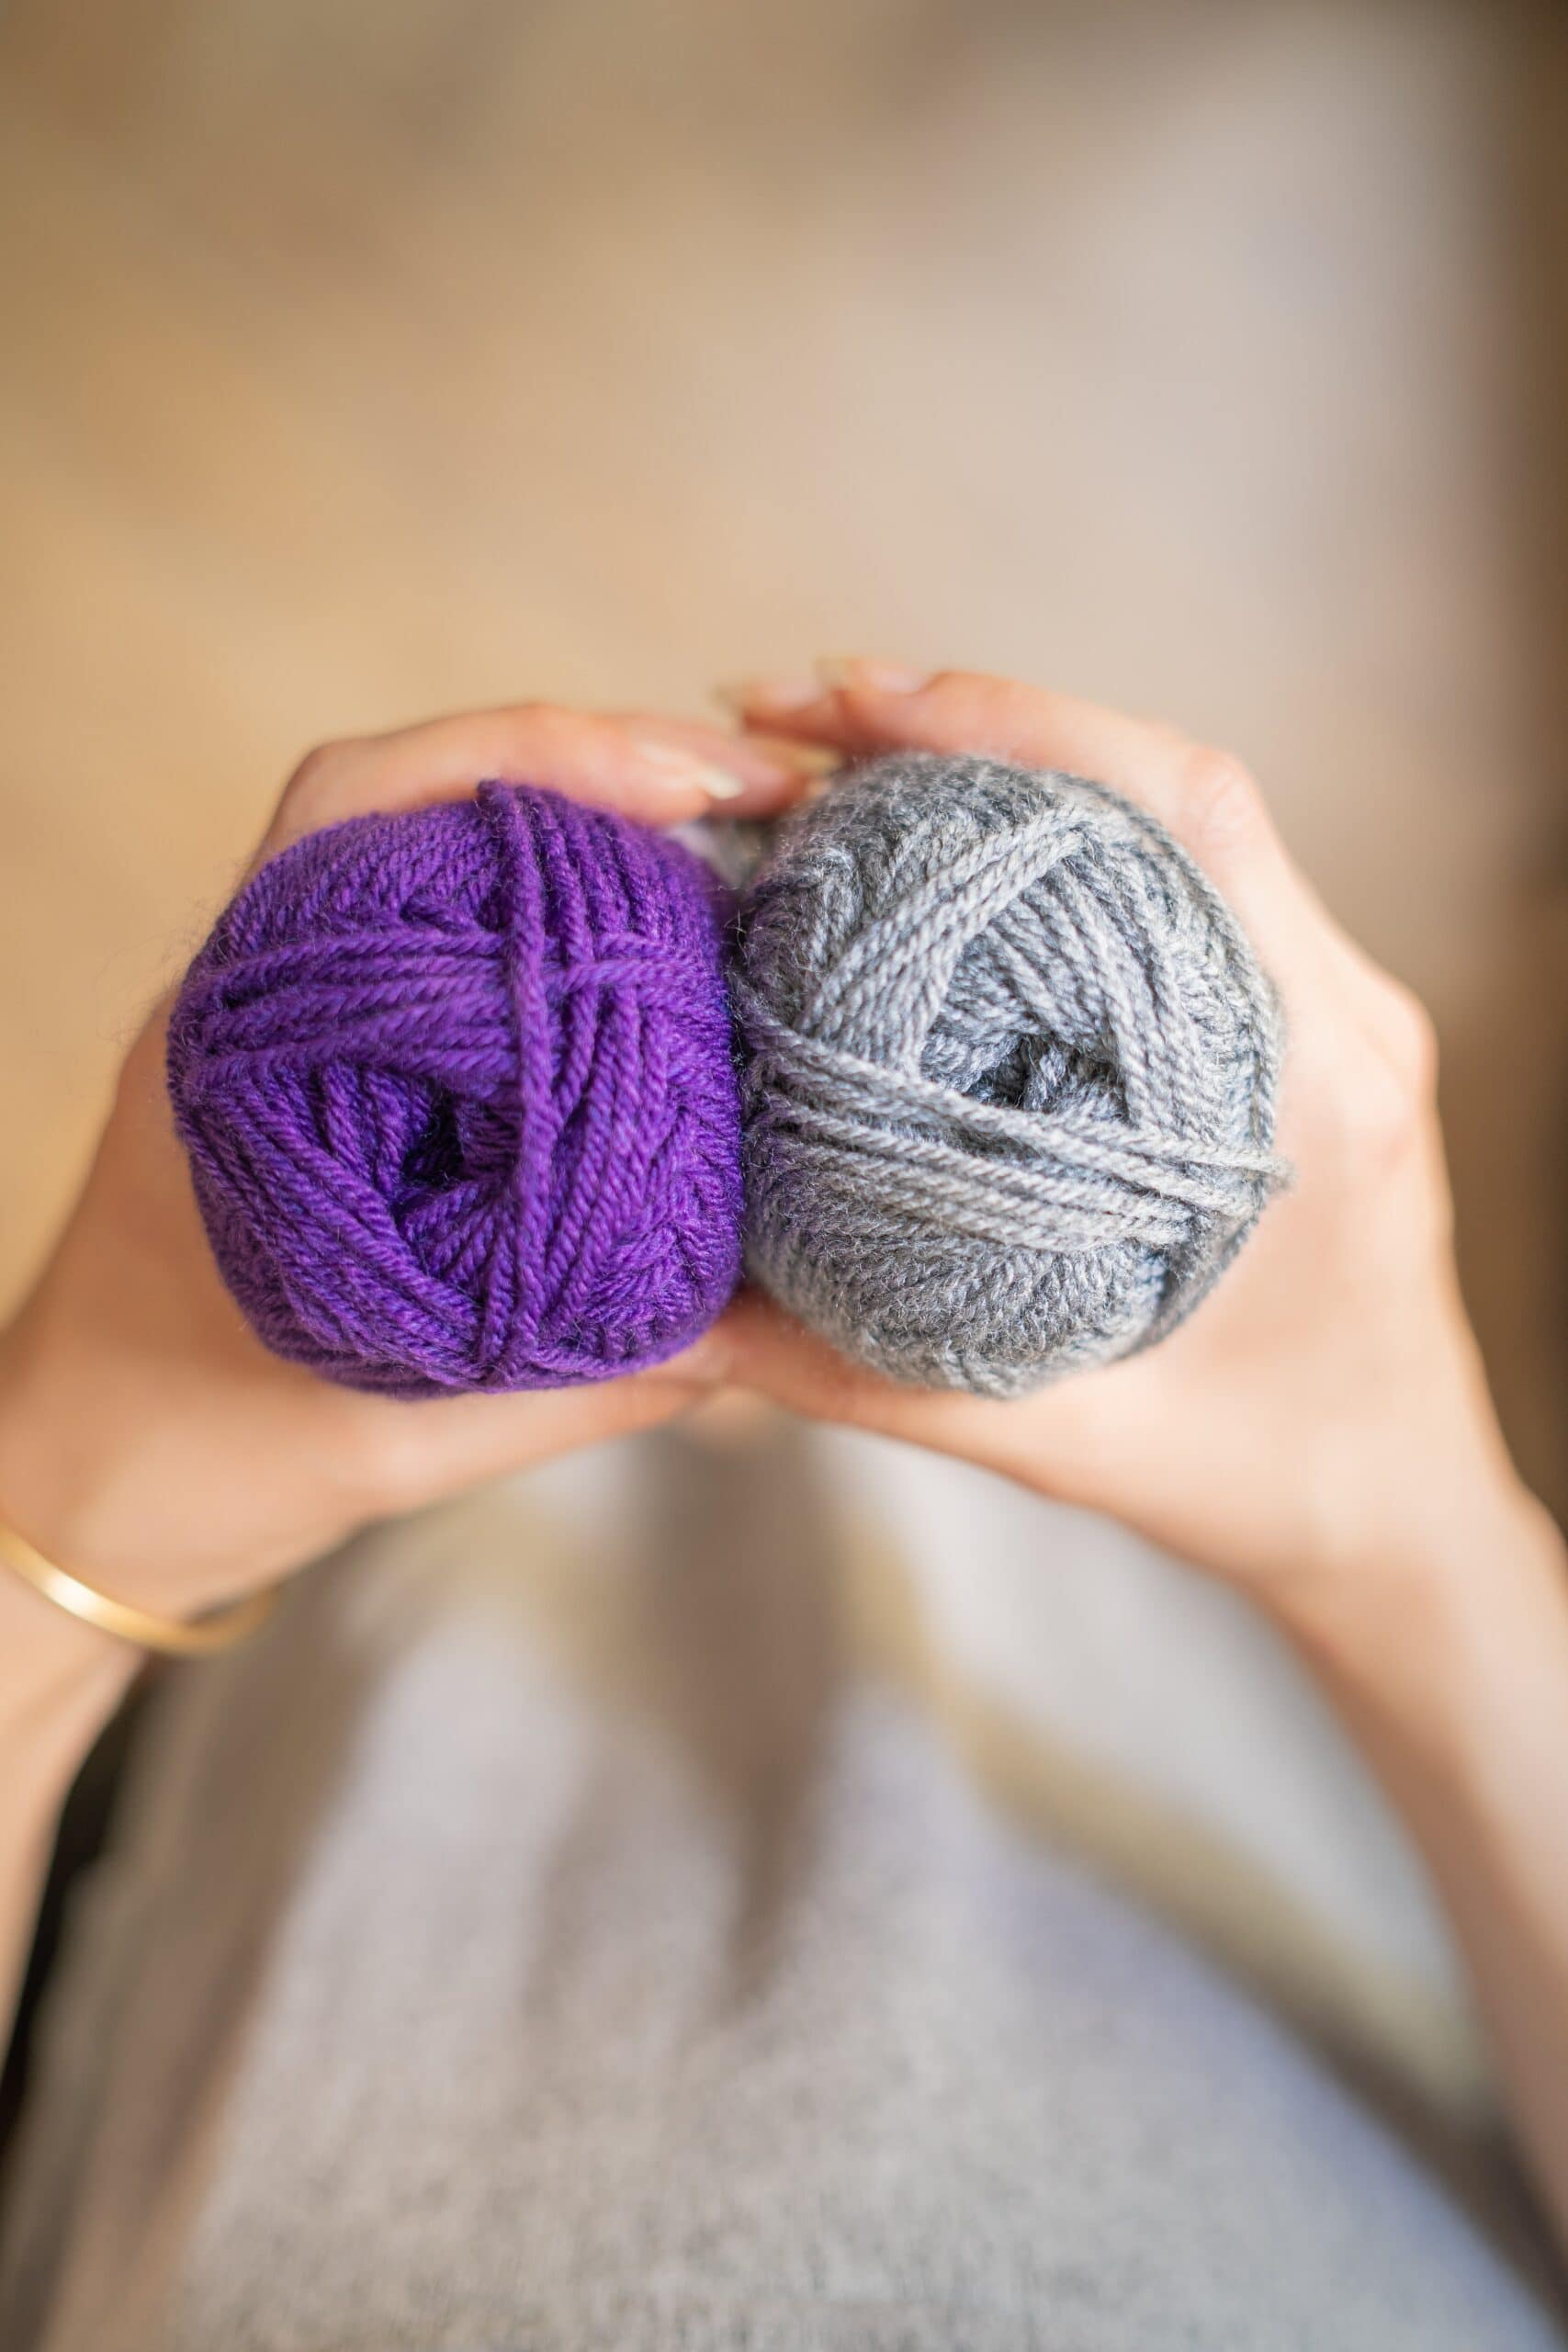 15 Crochet Tips That Will Set You Up For Success | Getting Started For Absolute Beginners